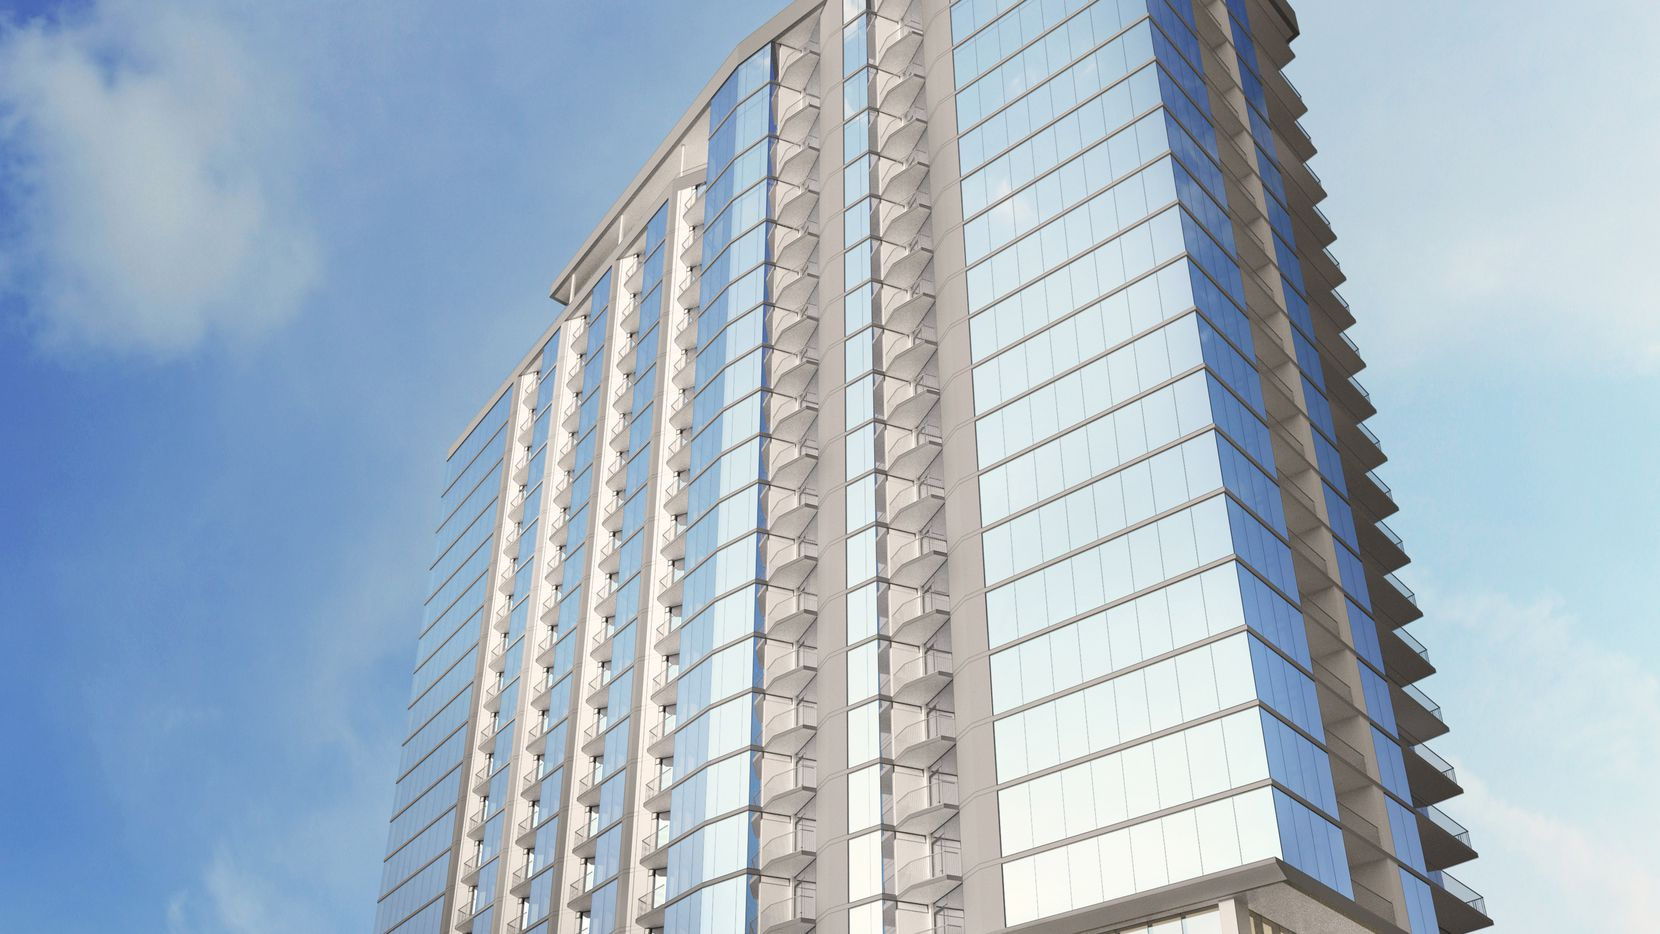 The Residences at Eastline apartment tower will have 330 units.